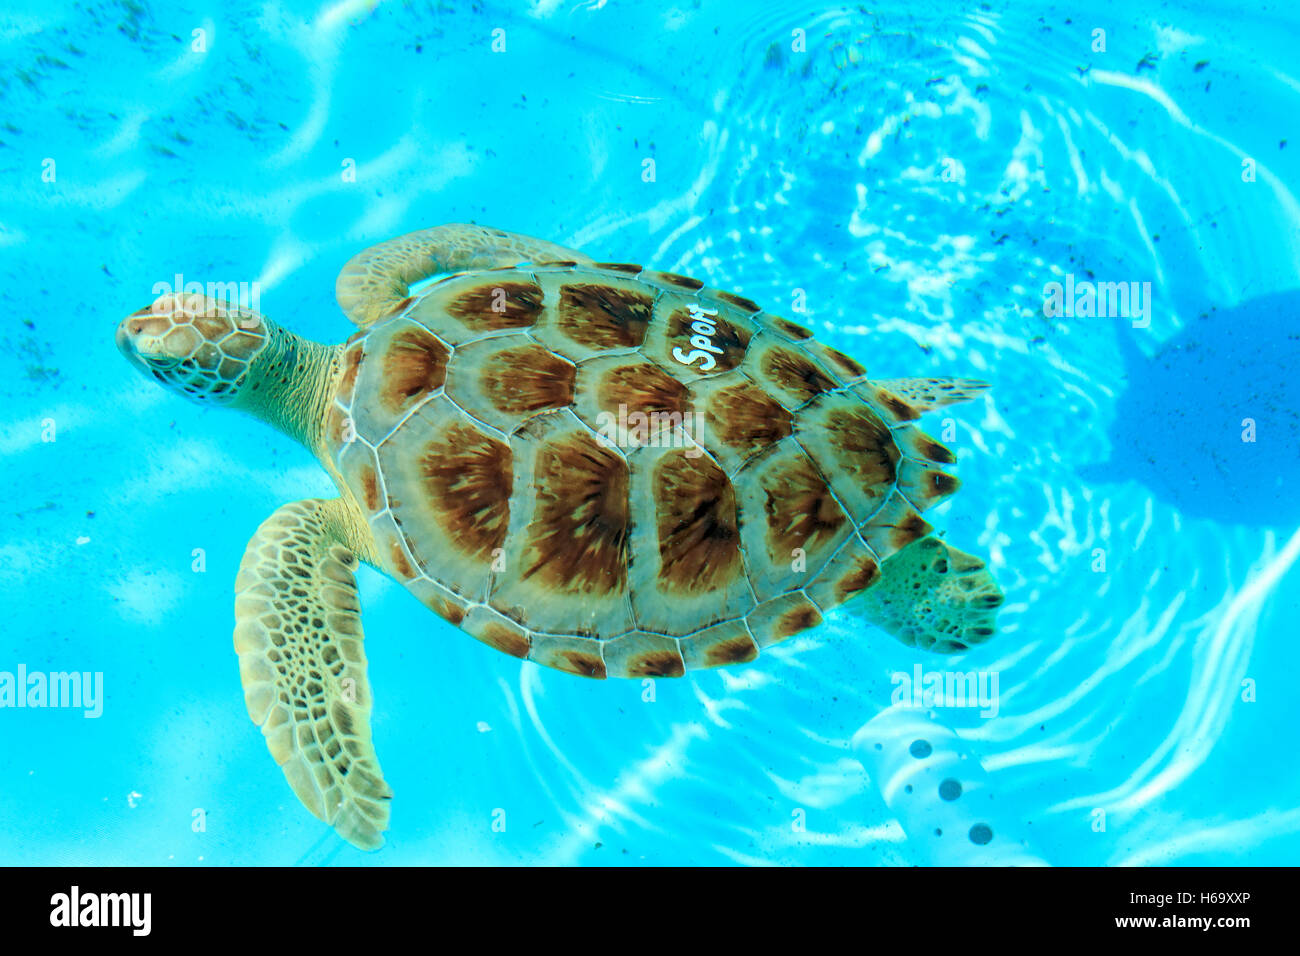 Rescued turtle at the Turtle Hospital in Marathon, Florida. The hospital rescues sick and injured turtles - Stock Image